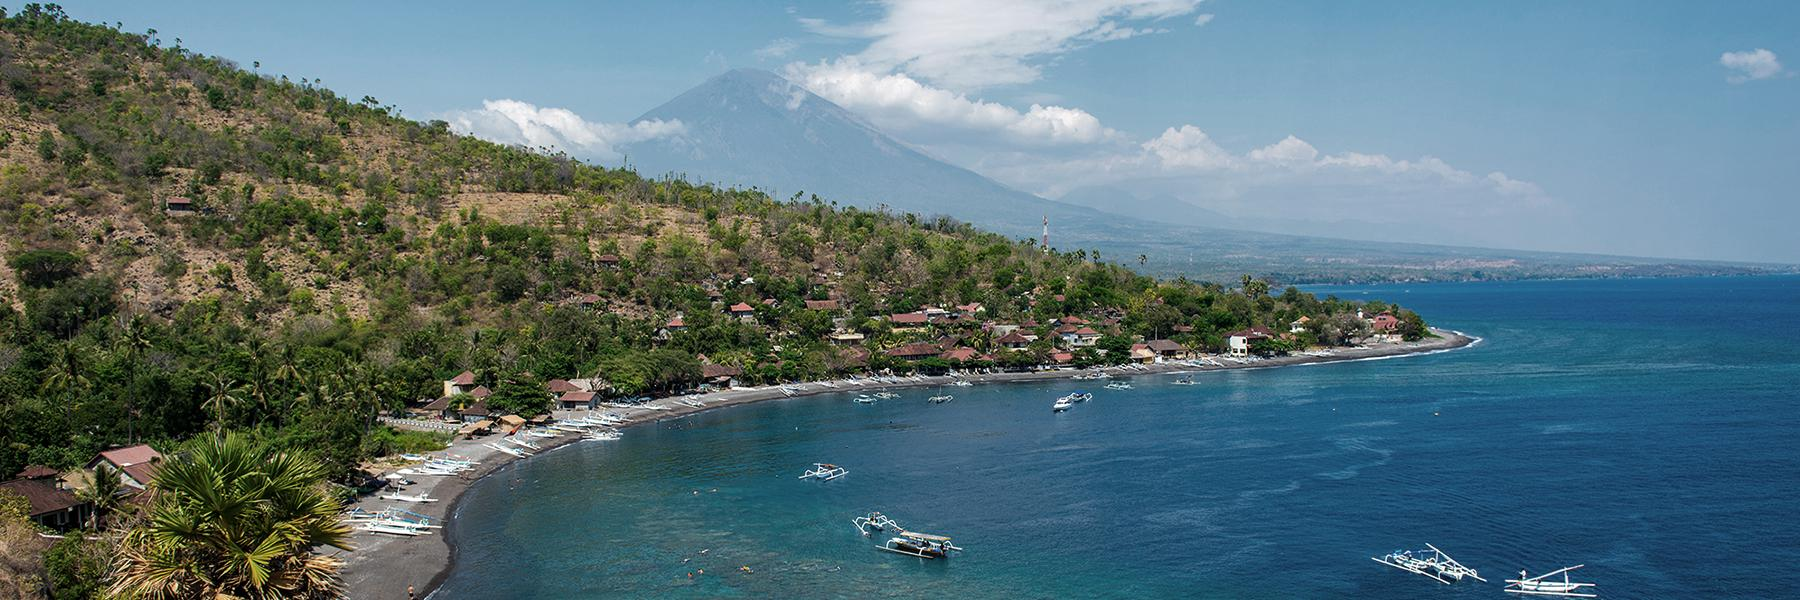 Why Visit East Bali?